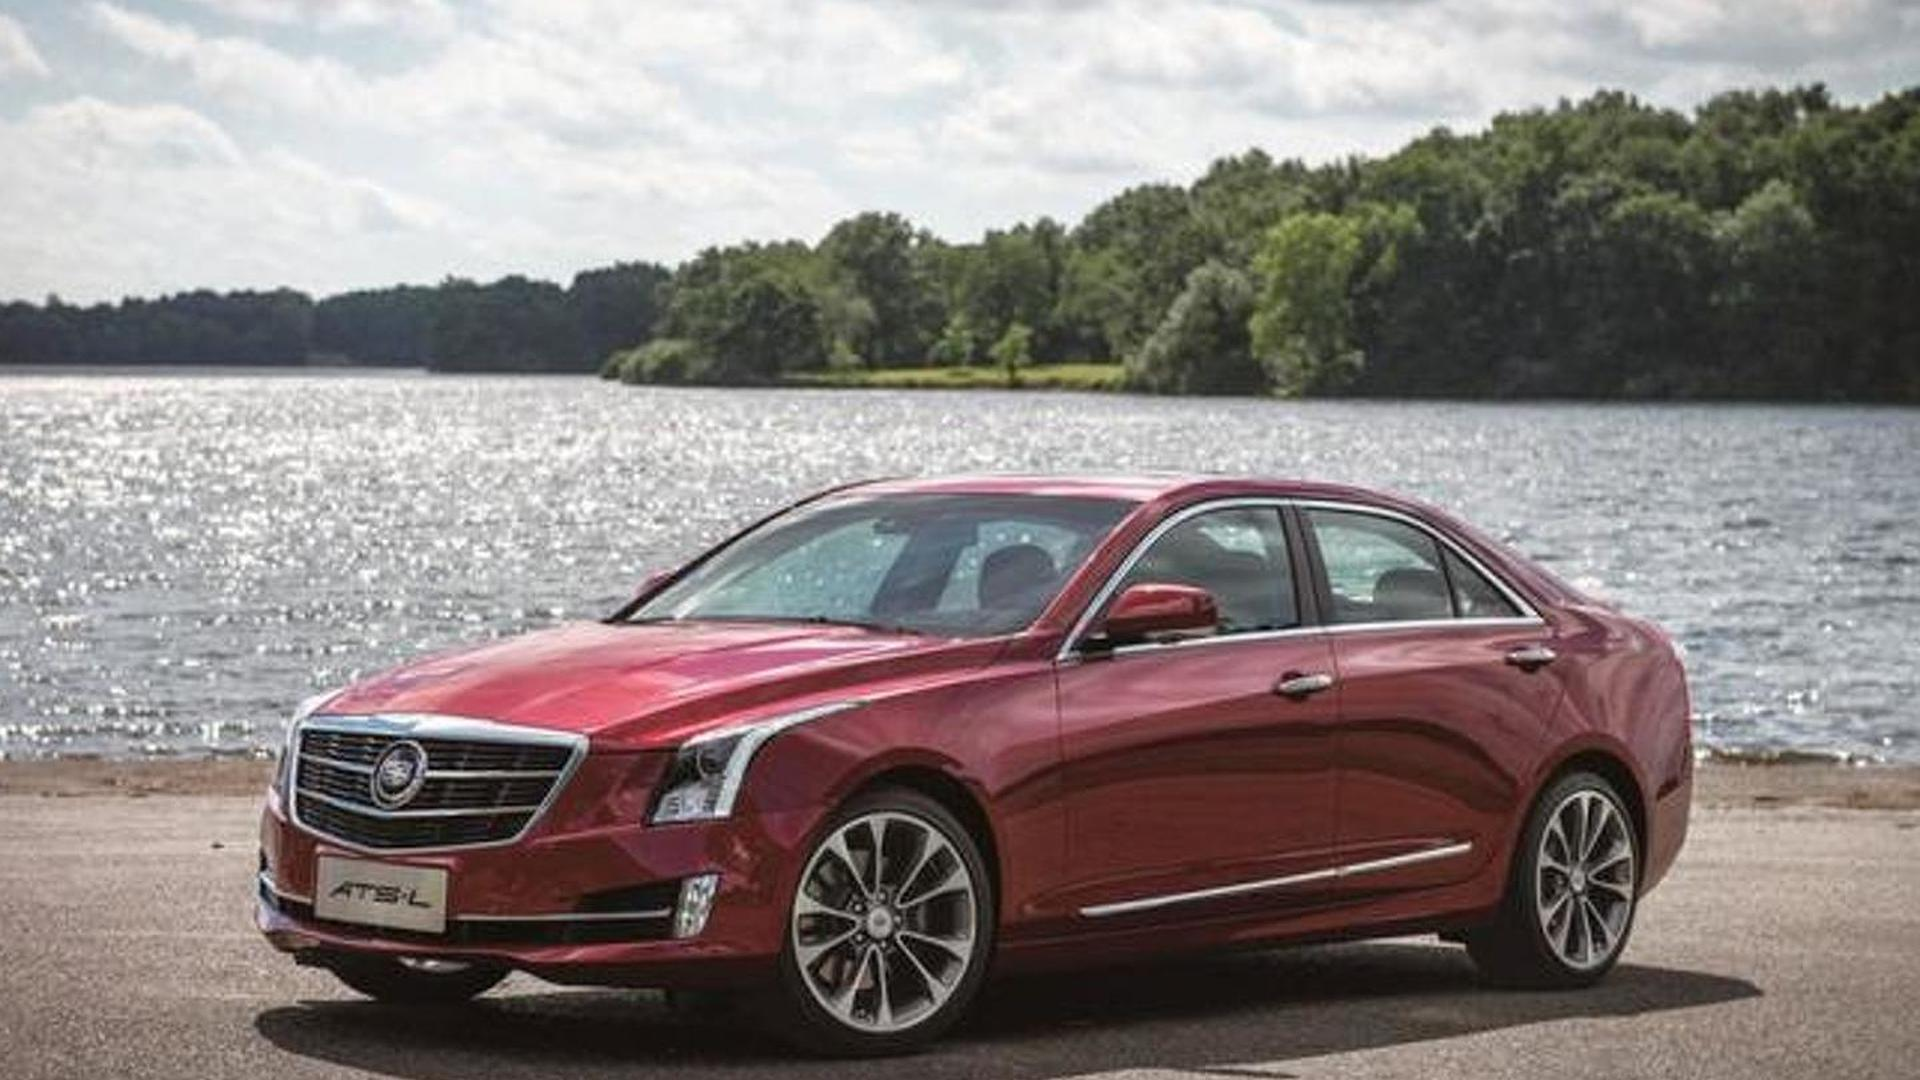 China-only Cadillac ATS-L first official images released